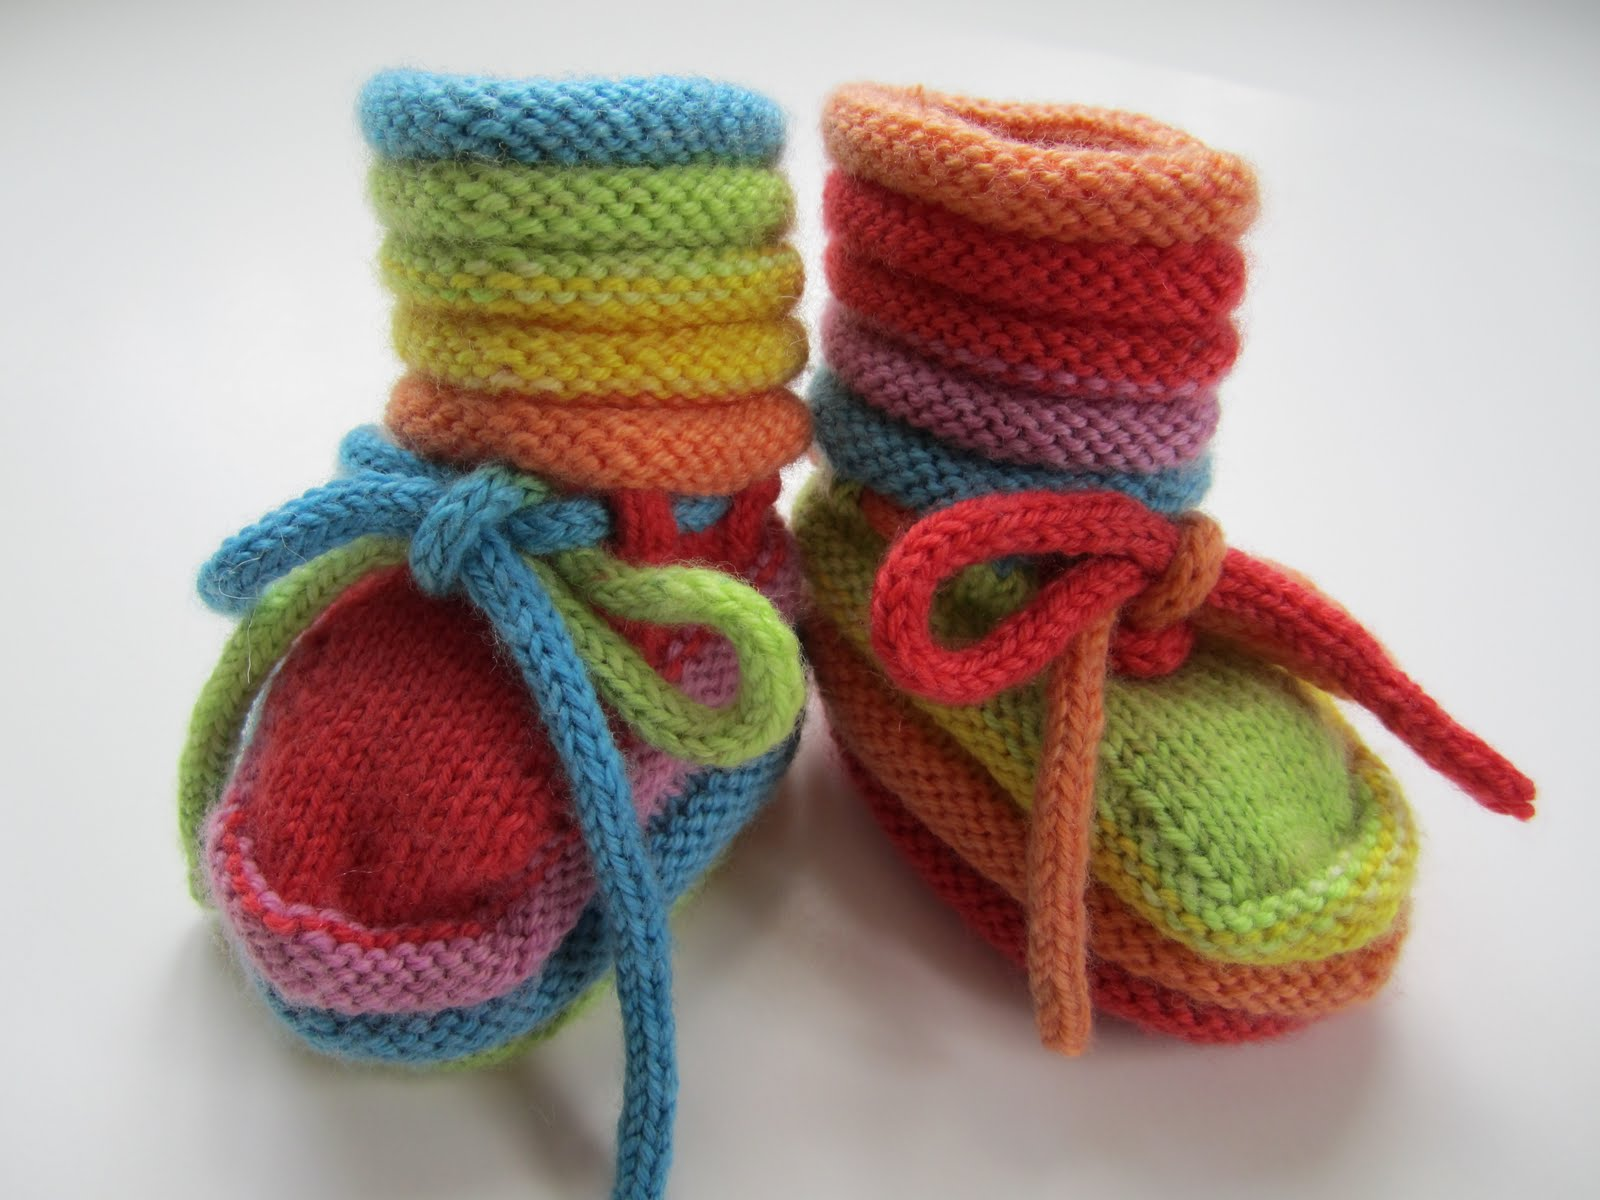 Knitting Pattern For Baby Boy Booties : Baby Booties Knit Patterns A Knitting Blog